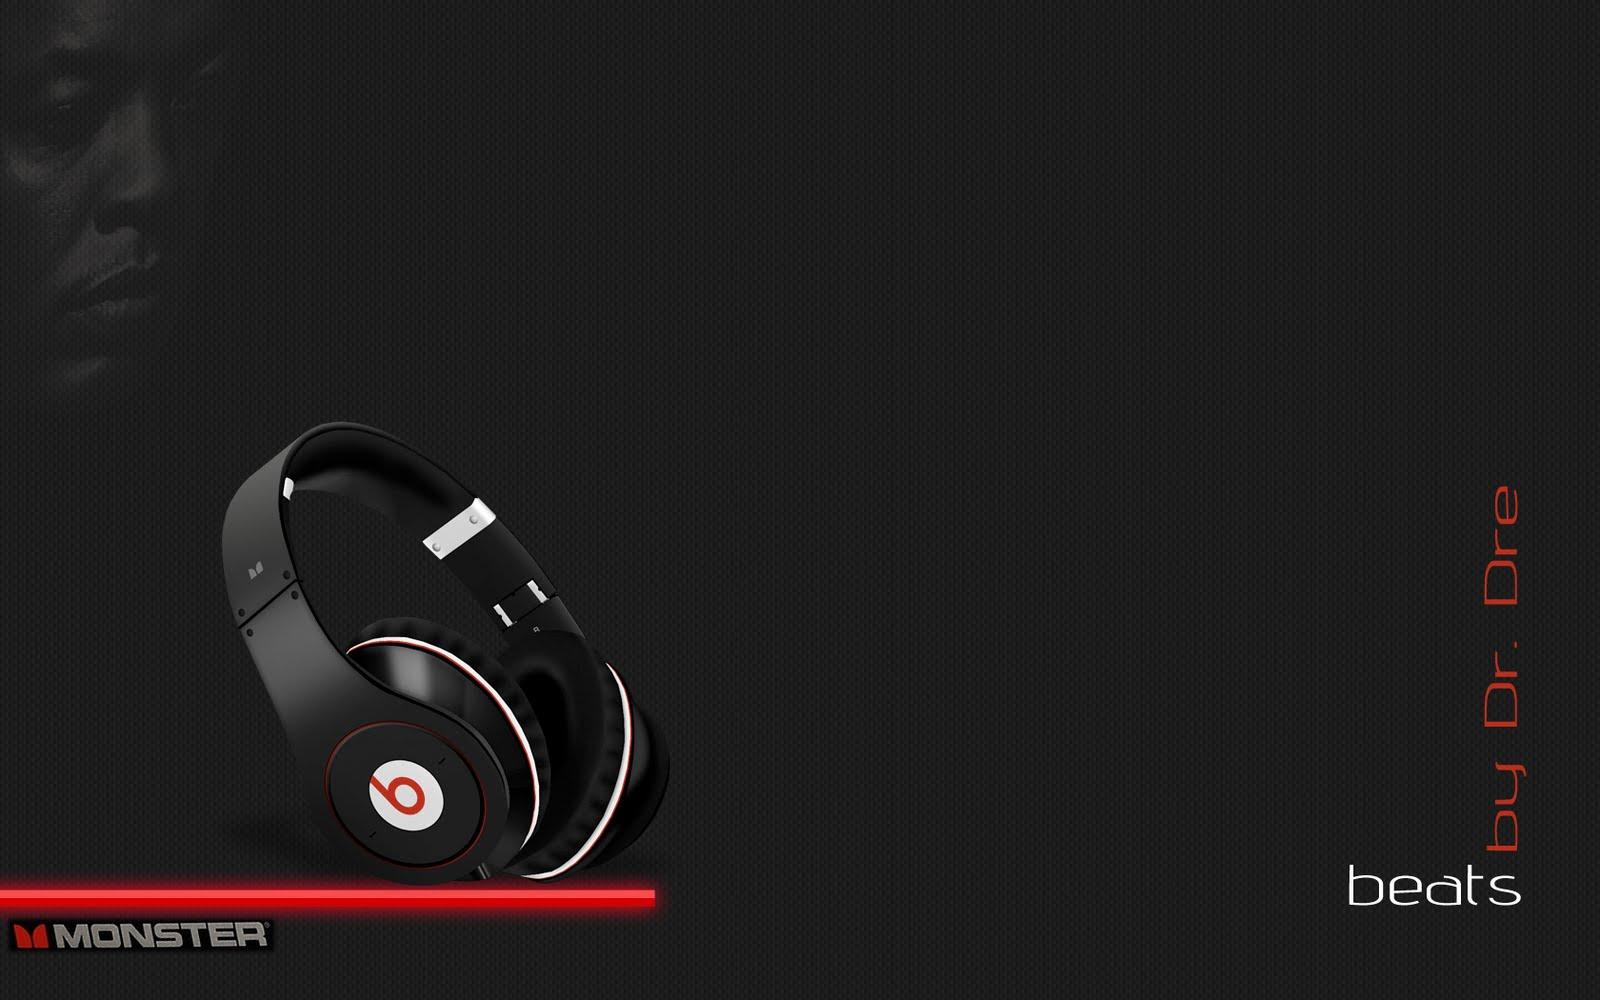 1b32f654de3 Download Beats By Dr Dre Wallpaper 1080p Beats by dr dre headphones ...